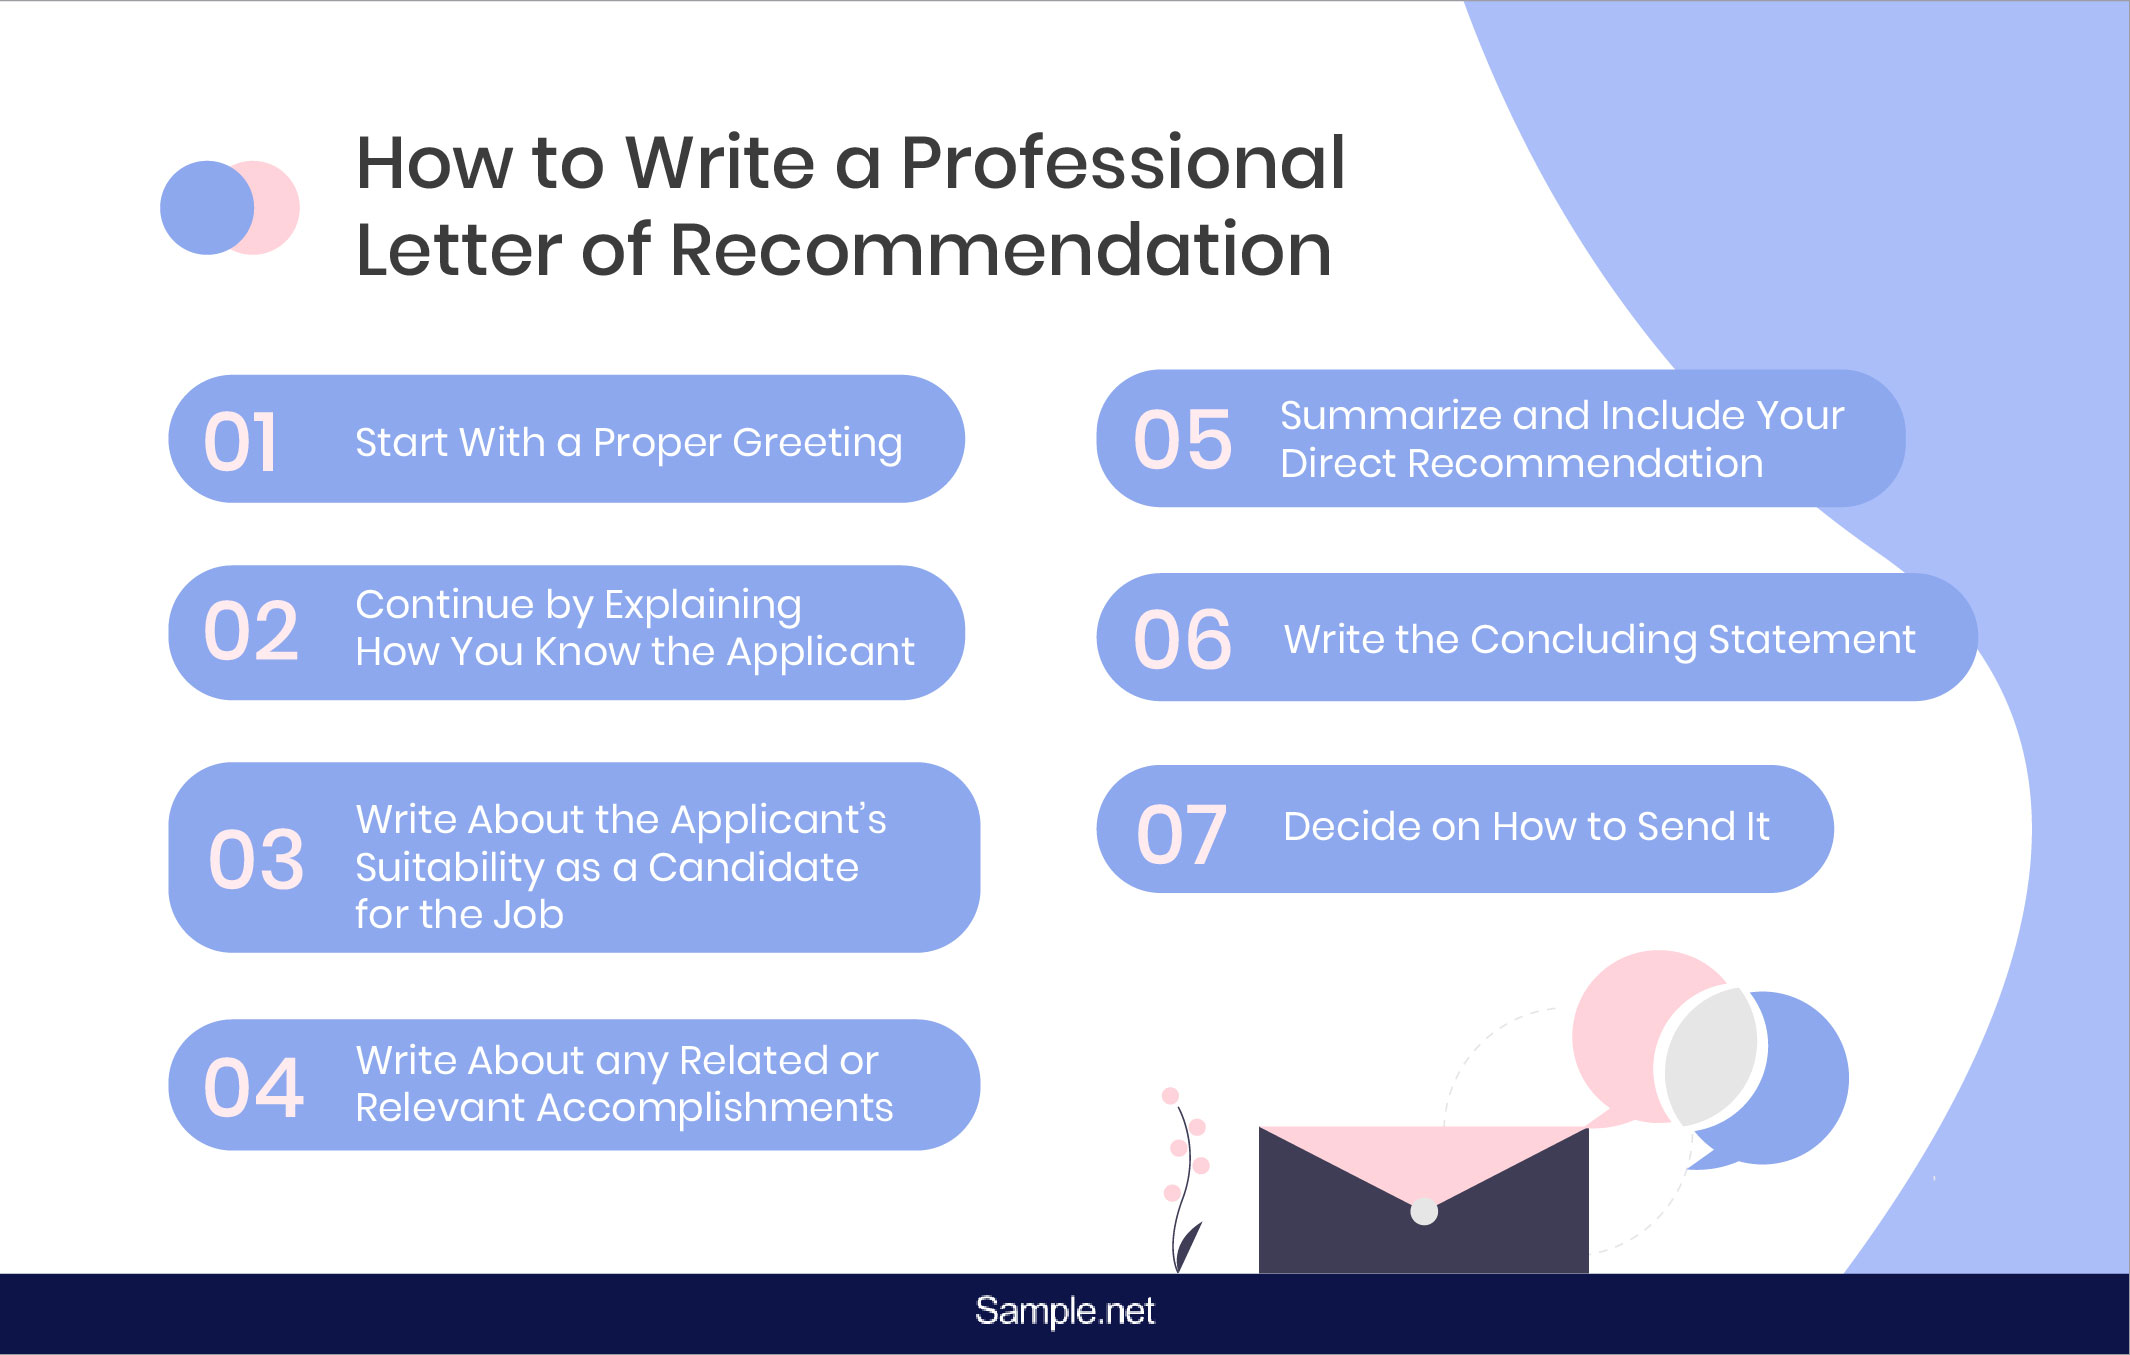 50-sample-professional-letter-of-recommendation-2